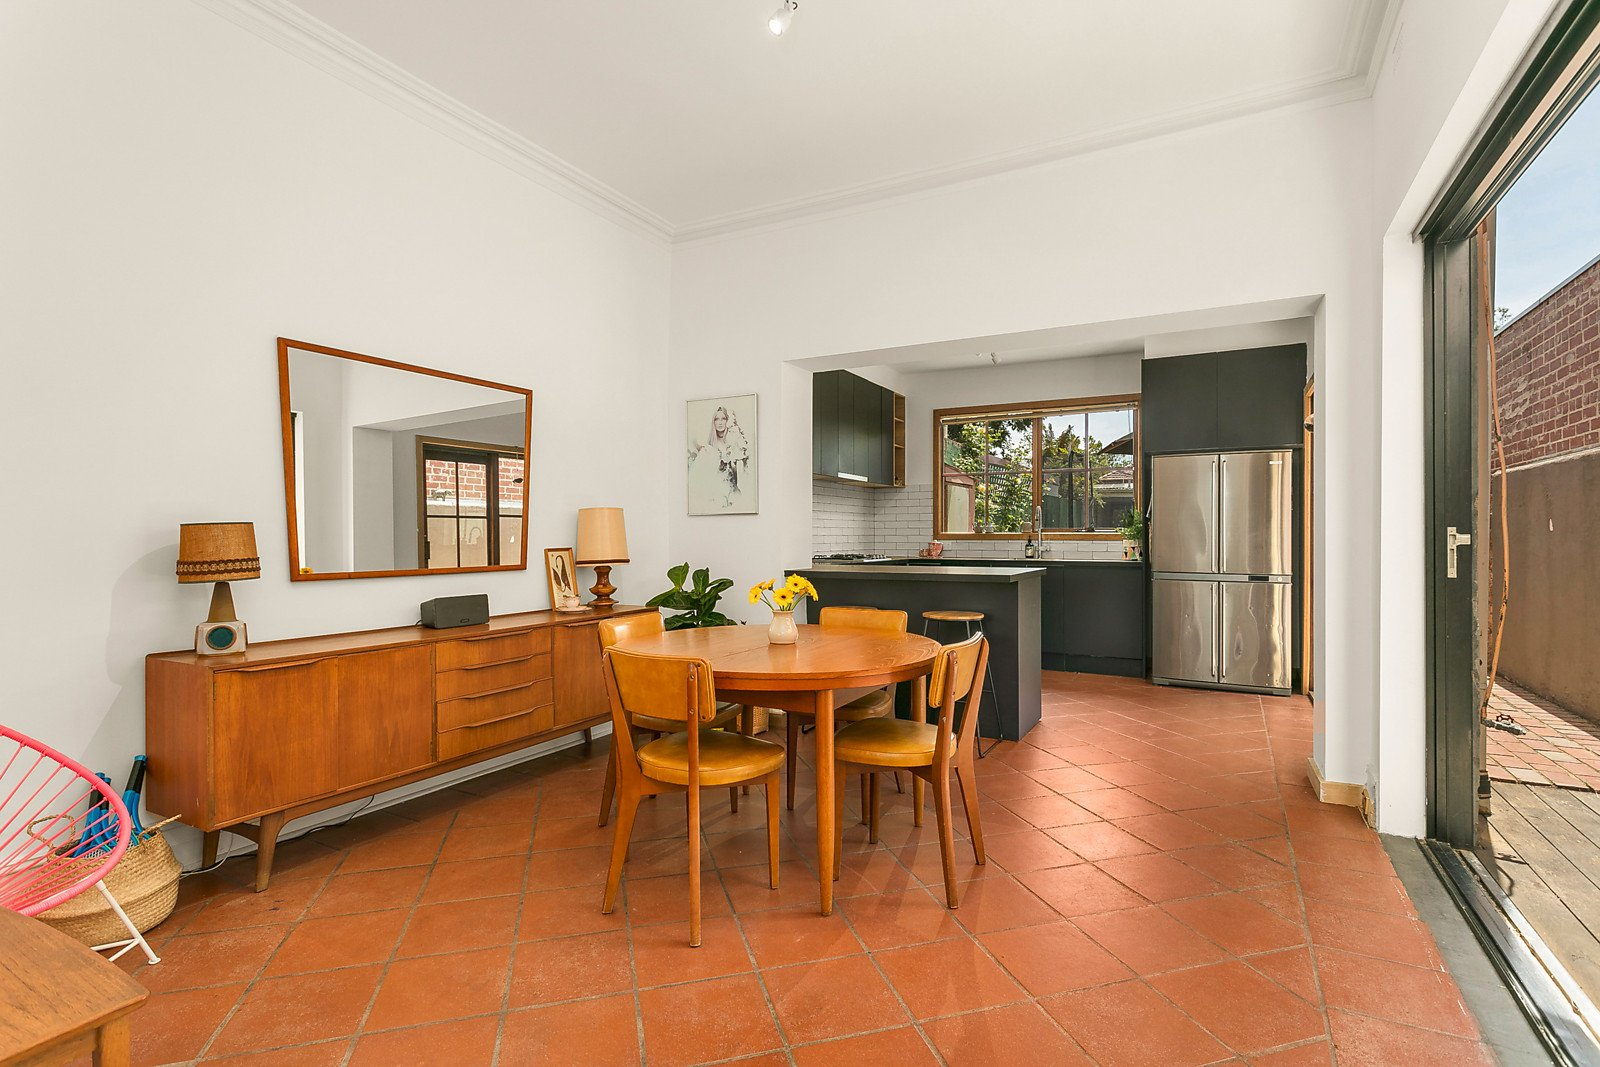 25 Holden Street, Fitzroy North, VIC, 3068 image 6